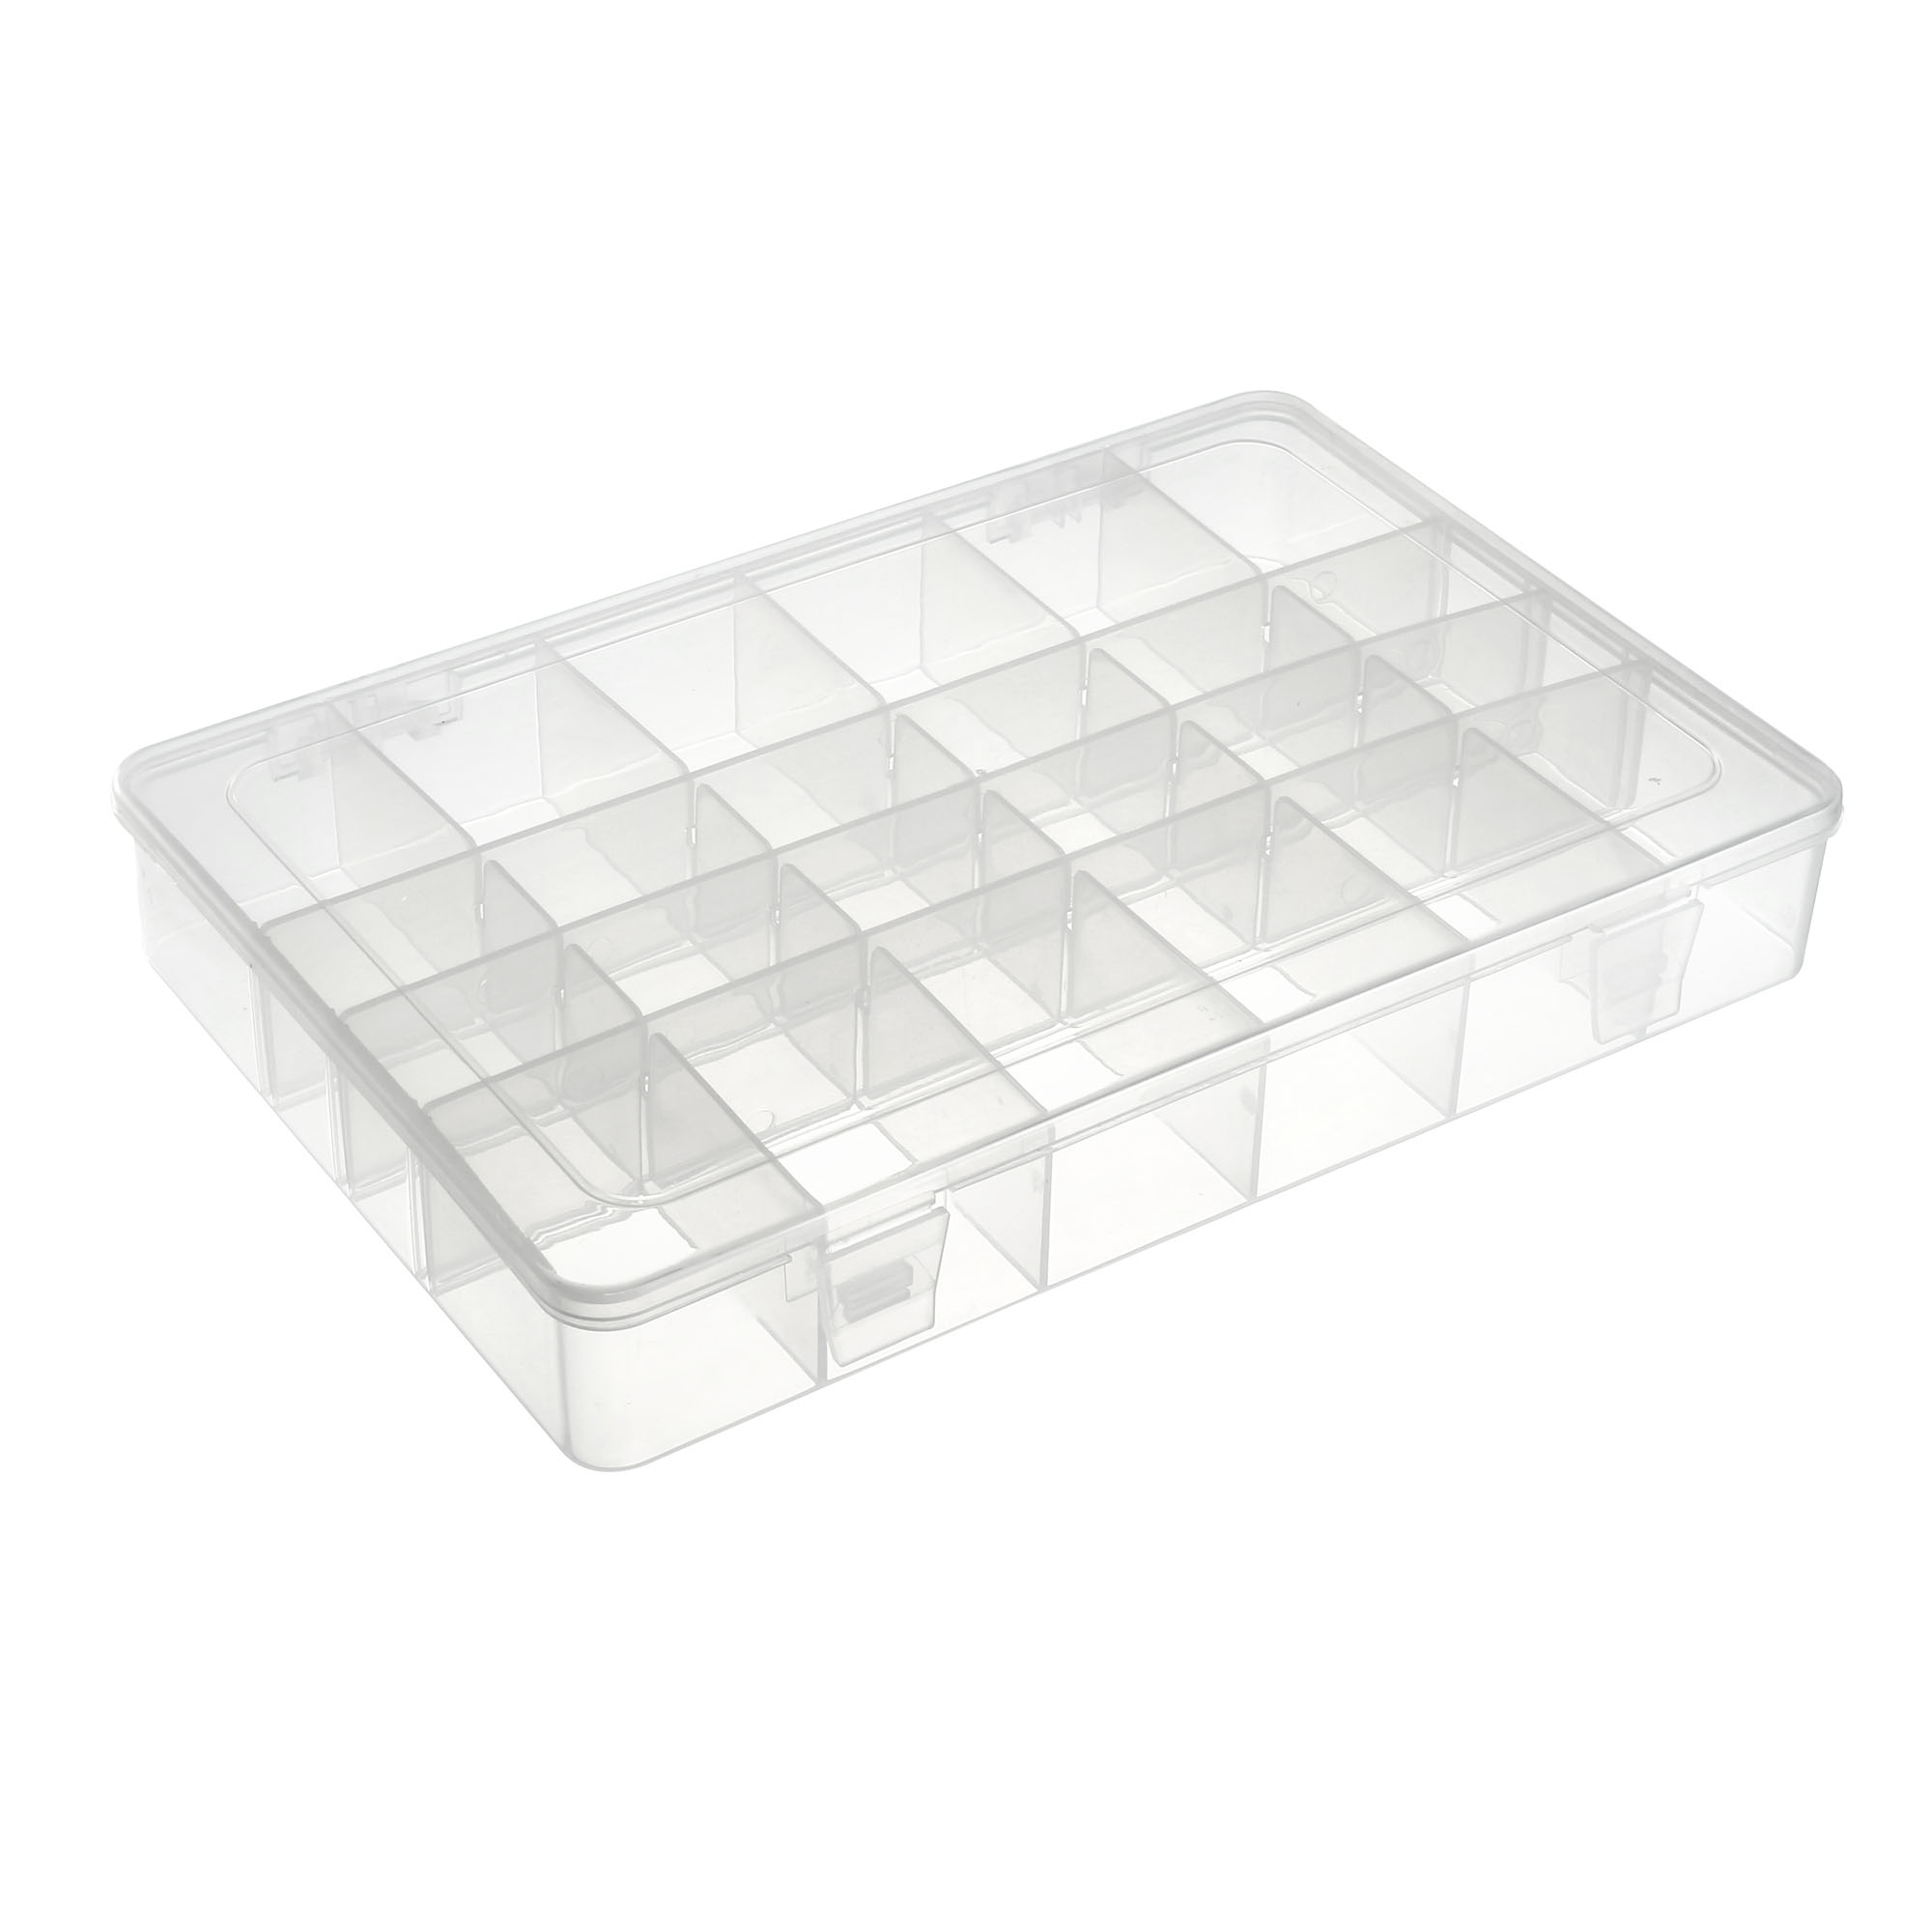 Component Storage Box - PP Adjustable 24 Grids Electronic Component Containers Tool Boxes Clear White 275x188x42mm - image 4 of 4